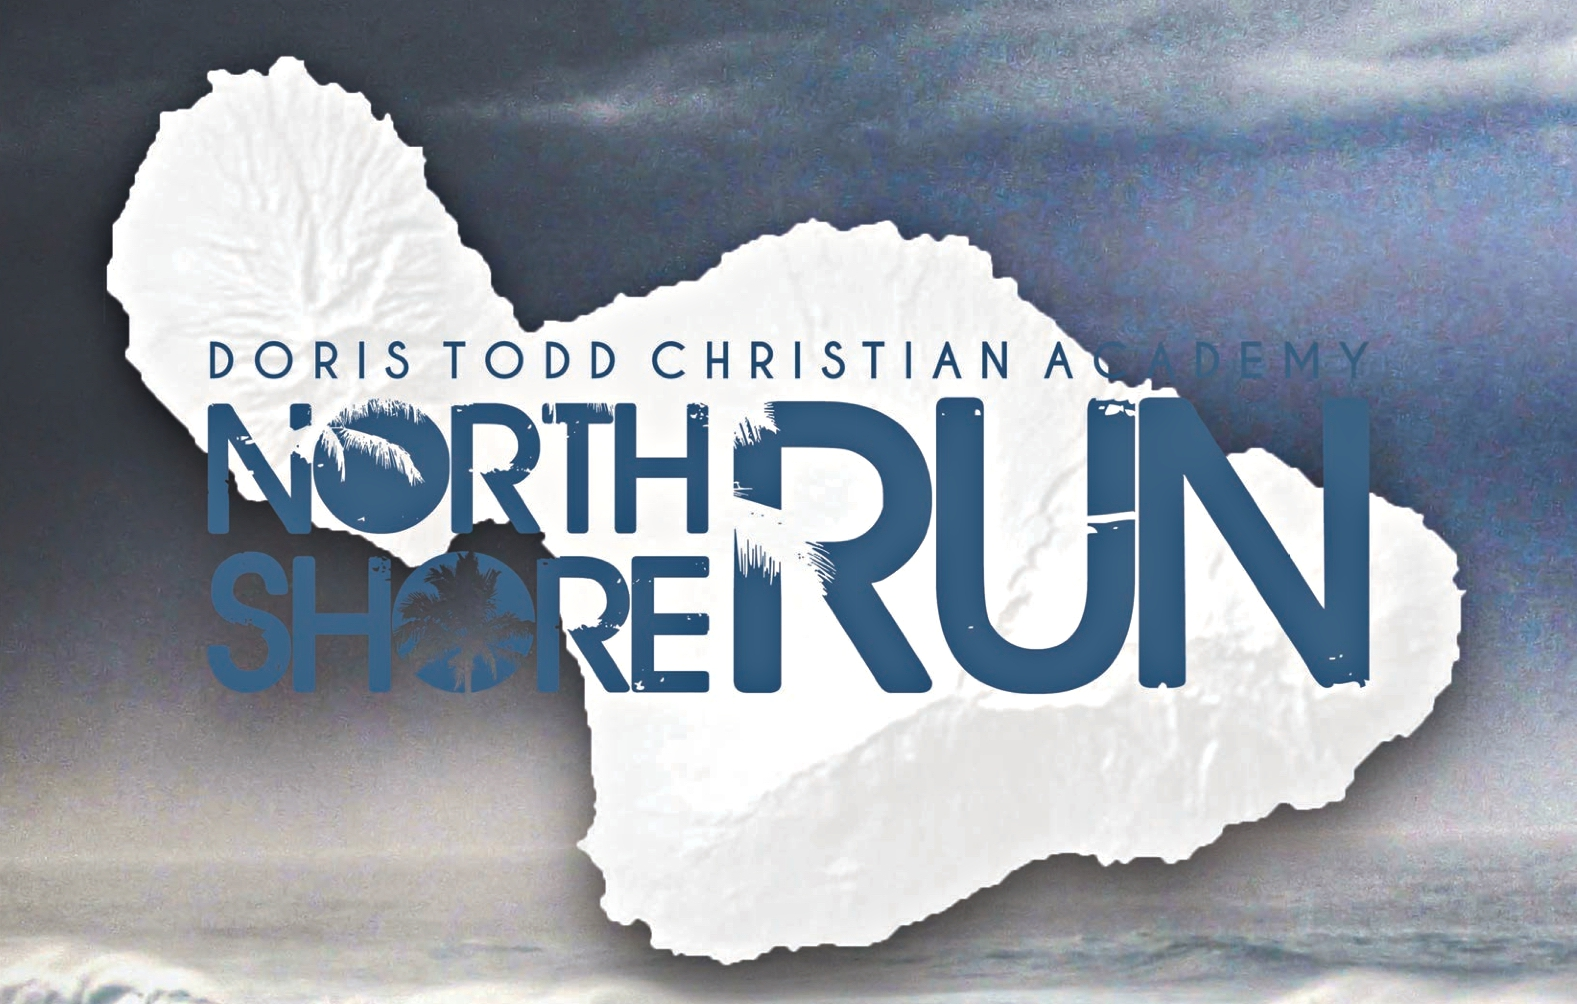 Results Are In for Doris Todd Christian Academy North Shore Run